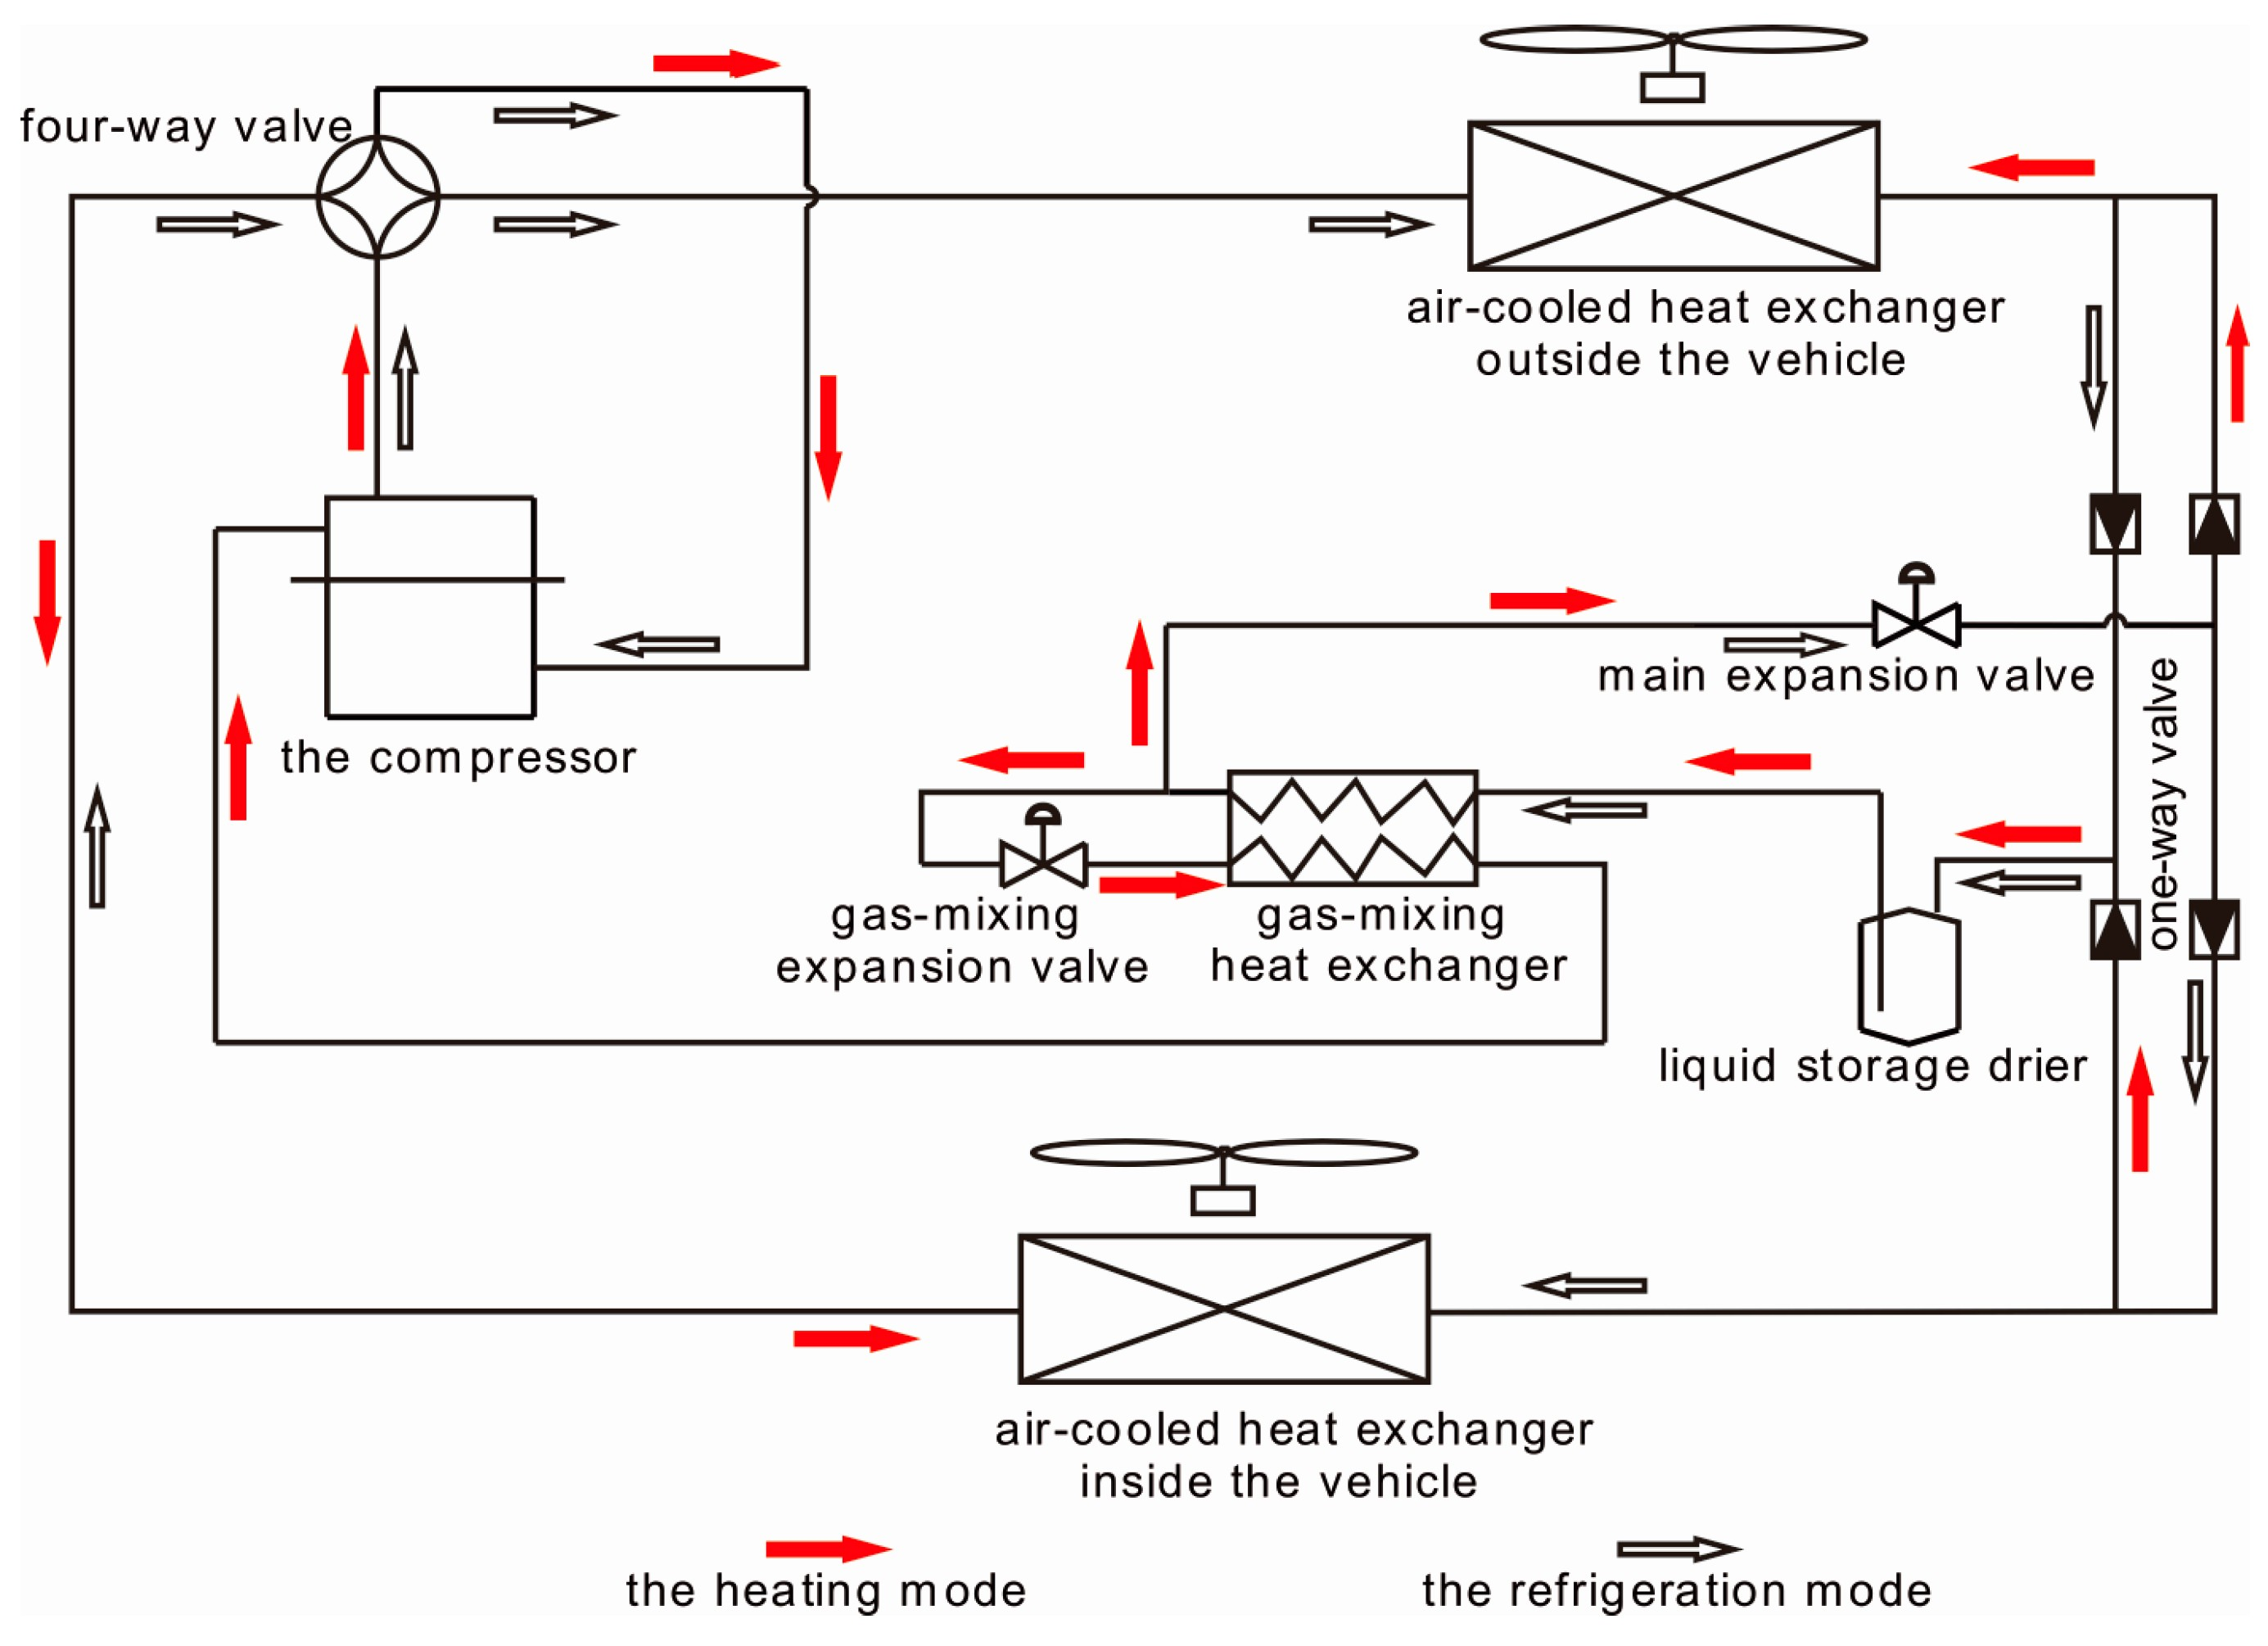 Car Ac System Diagram Energies Free Full Text Of Car Ac System Diagram